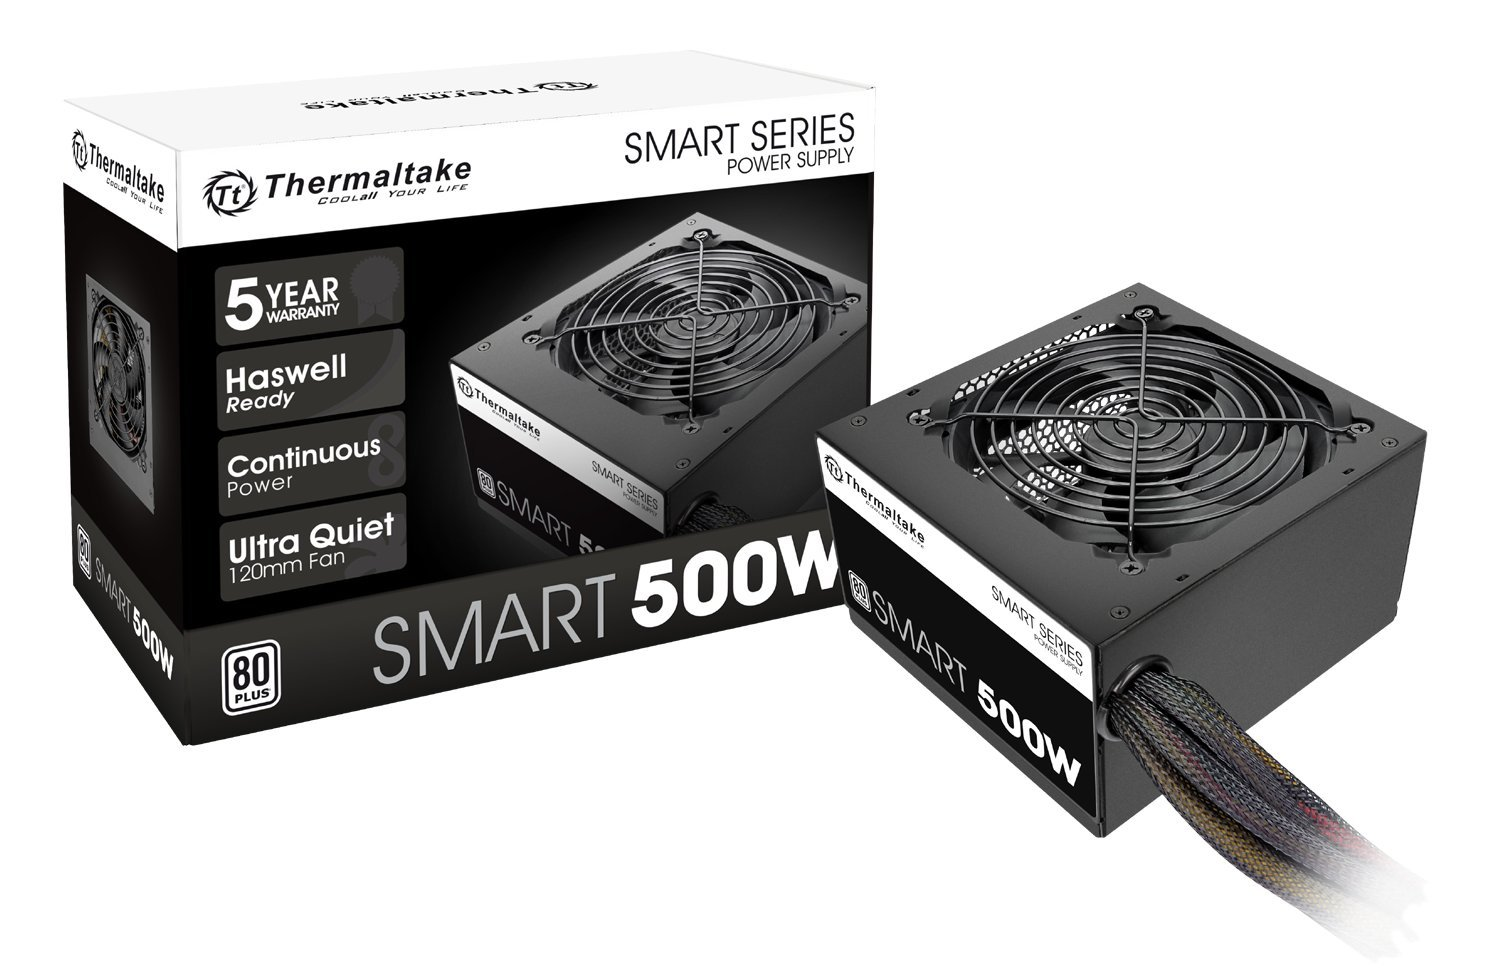 Thermaltake Smart 500W 80+ White Certified PSU, Continuous Power with 120mm Ultra Quiet Cooling Fan, ATX 12V V2.3/EPS 12V Active PFC Power Supply PS-SPD-0500NPCWUS-W by Thermaltake